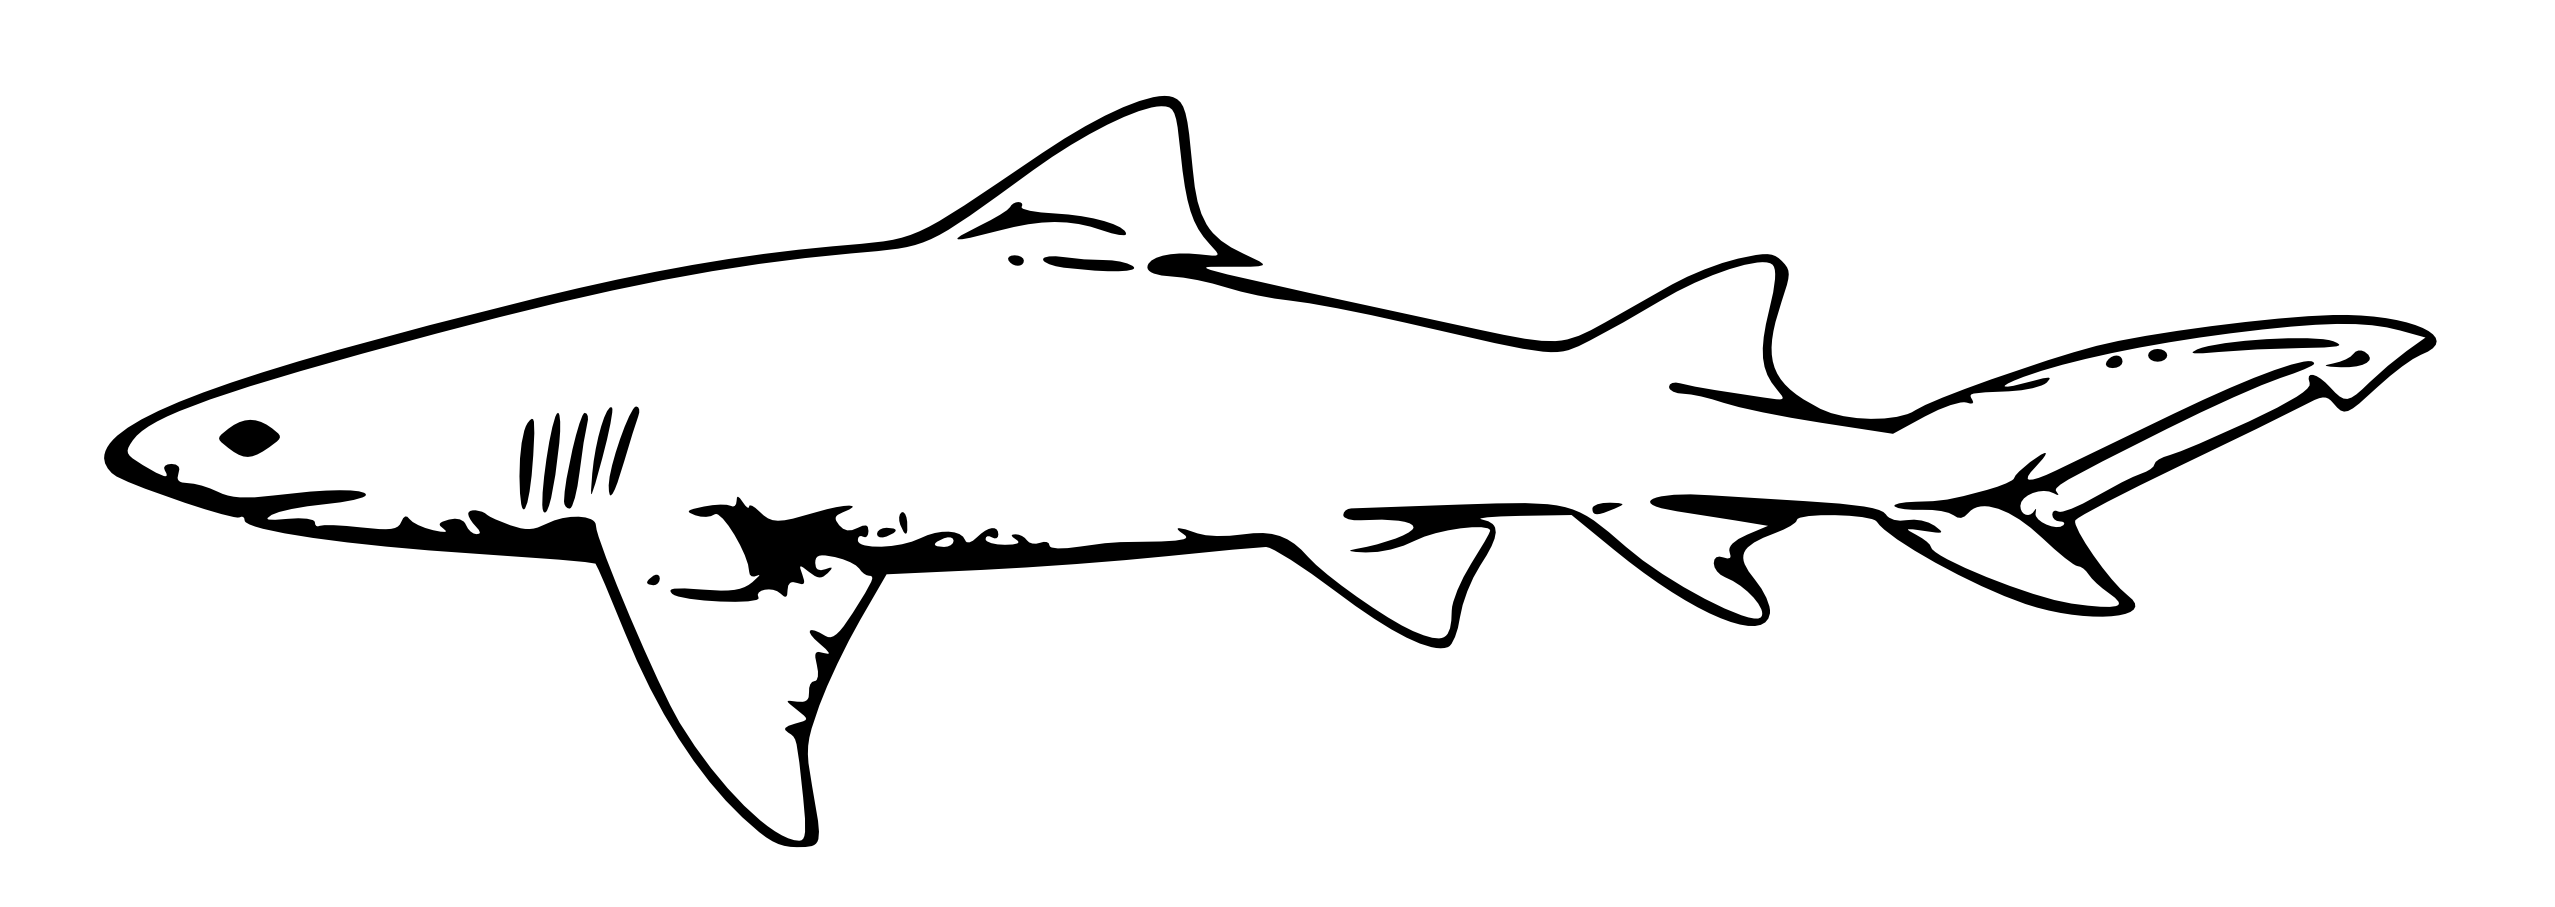 Clipart shark word. Black and white panda